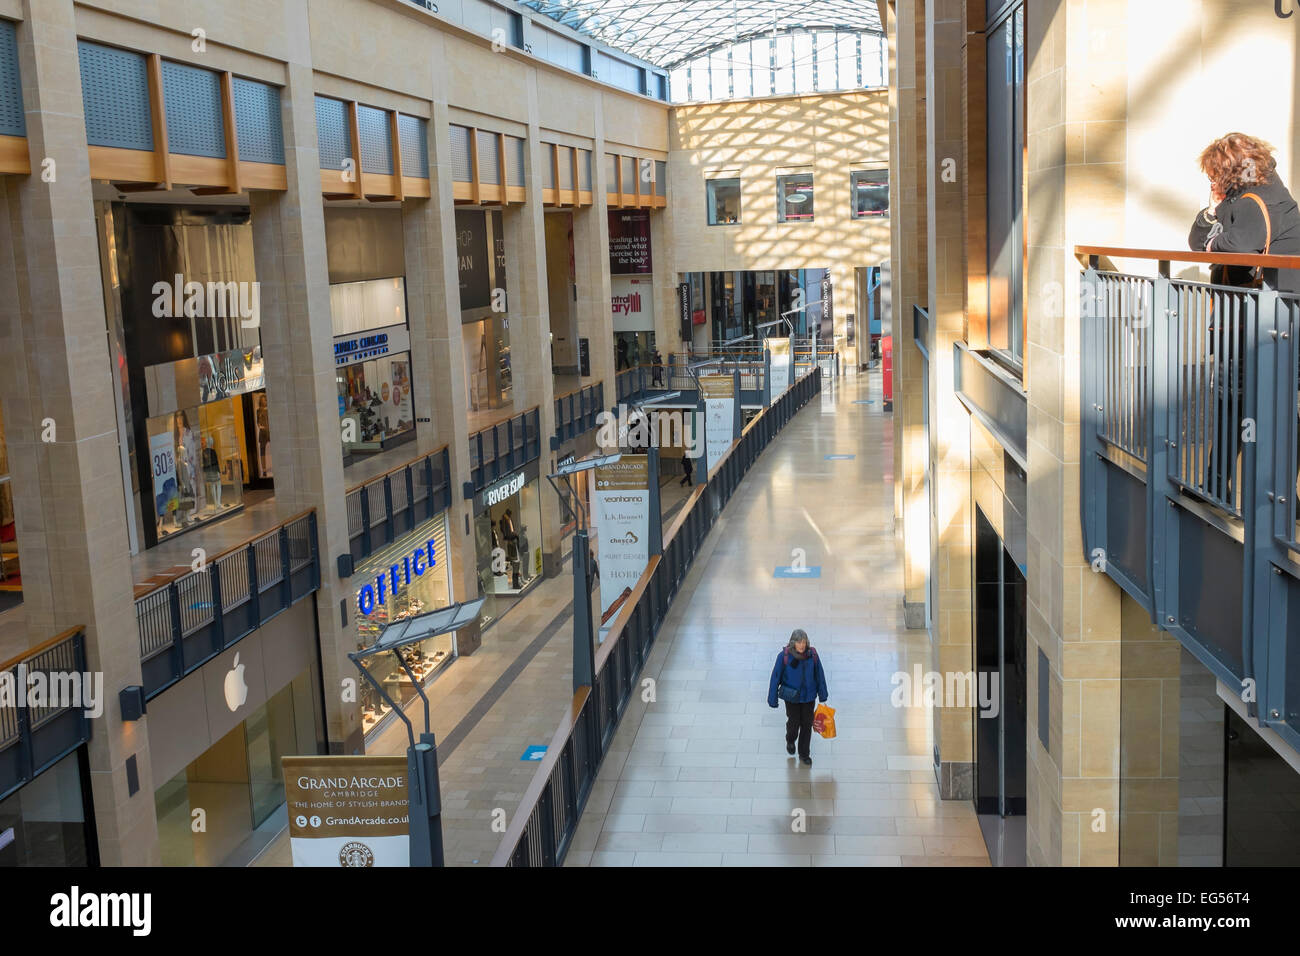 grand-arcade-from-top-floor-cambridge-city-cambridgeshire-england-EG56T4.jpg